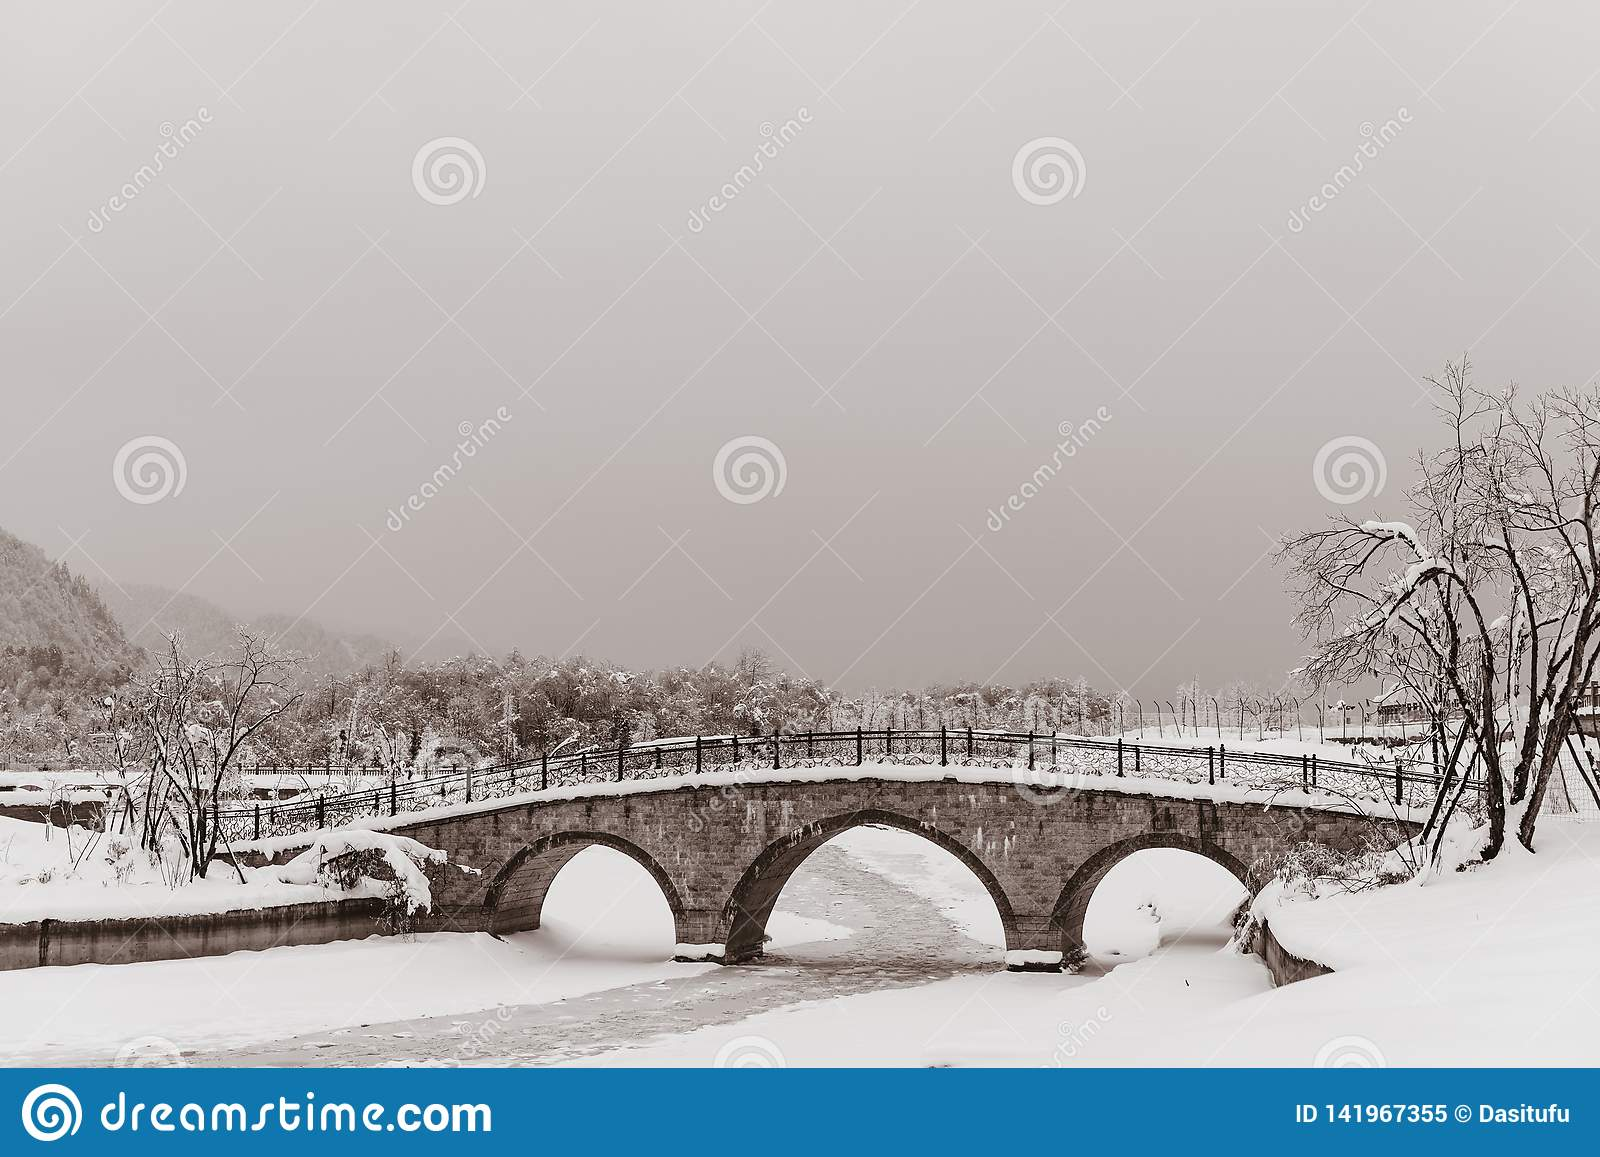 Bridge covered snow with frozen river